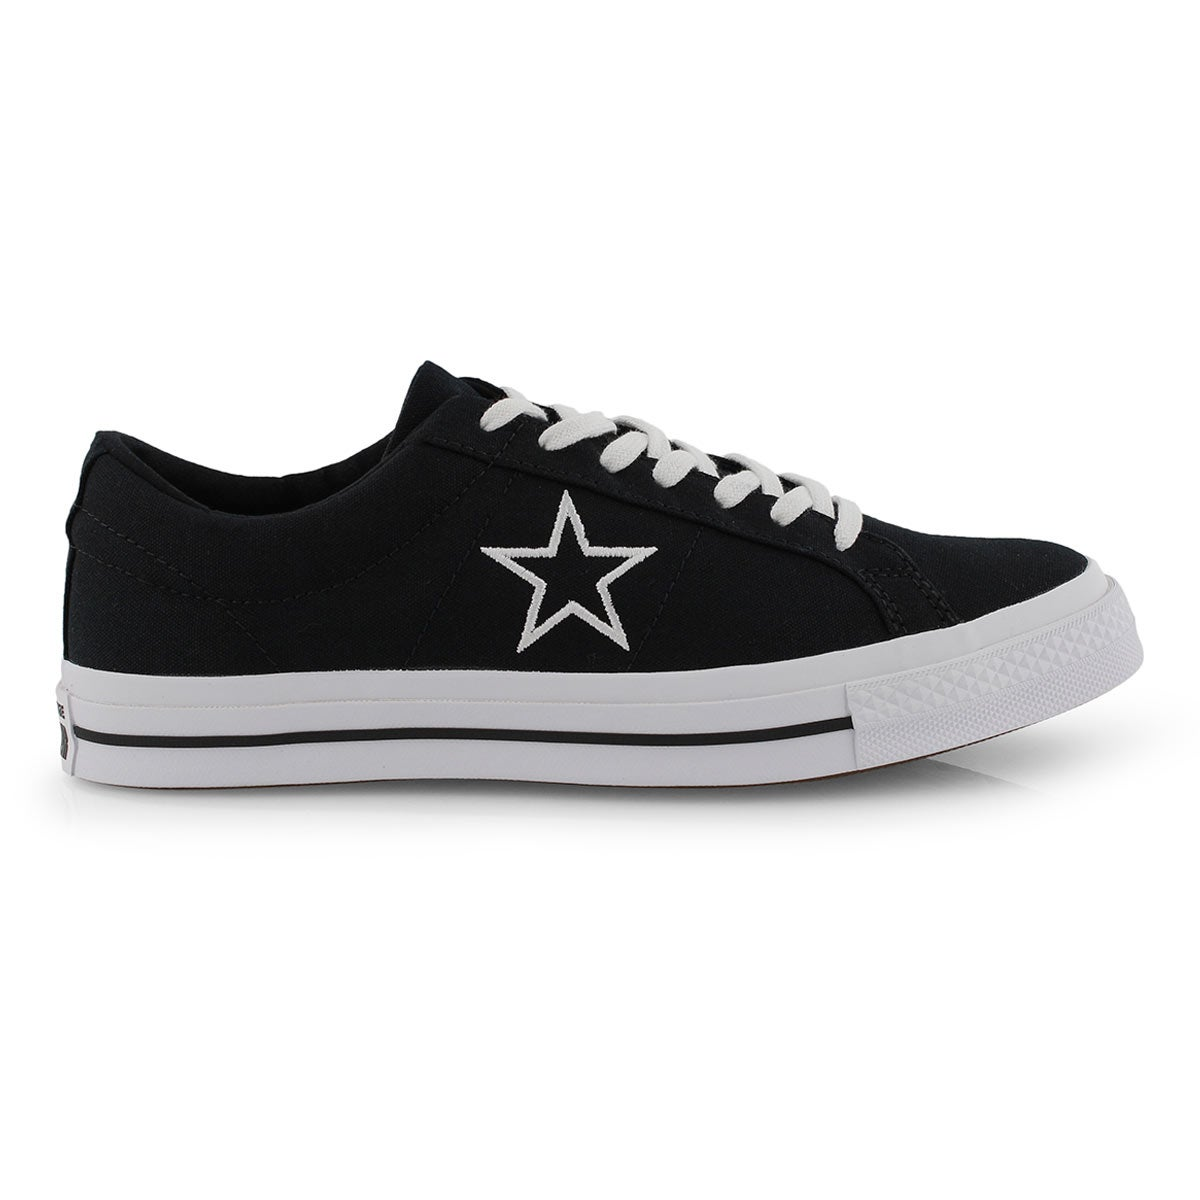 Mns One Star blk/wht fashion snkr